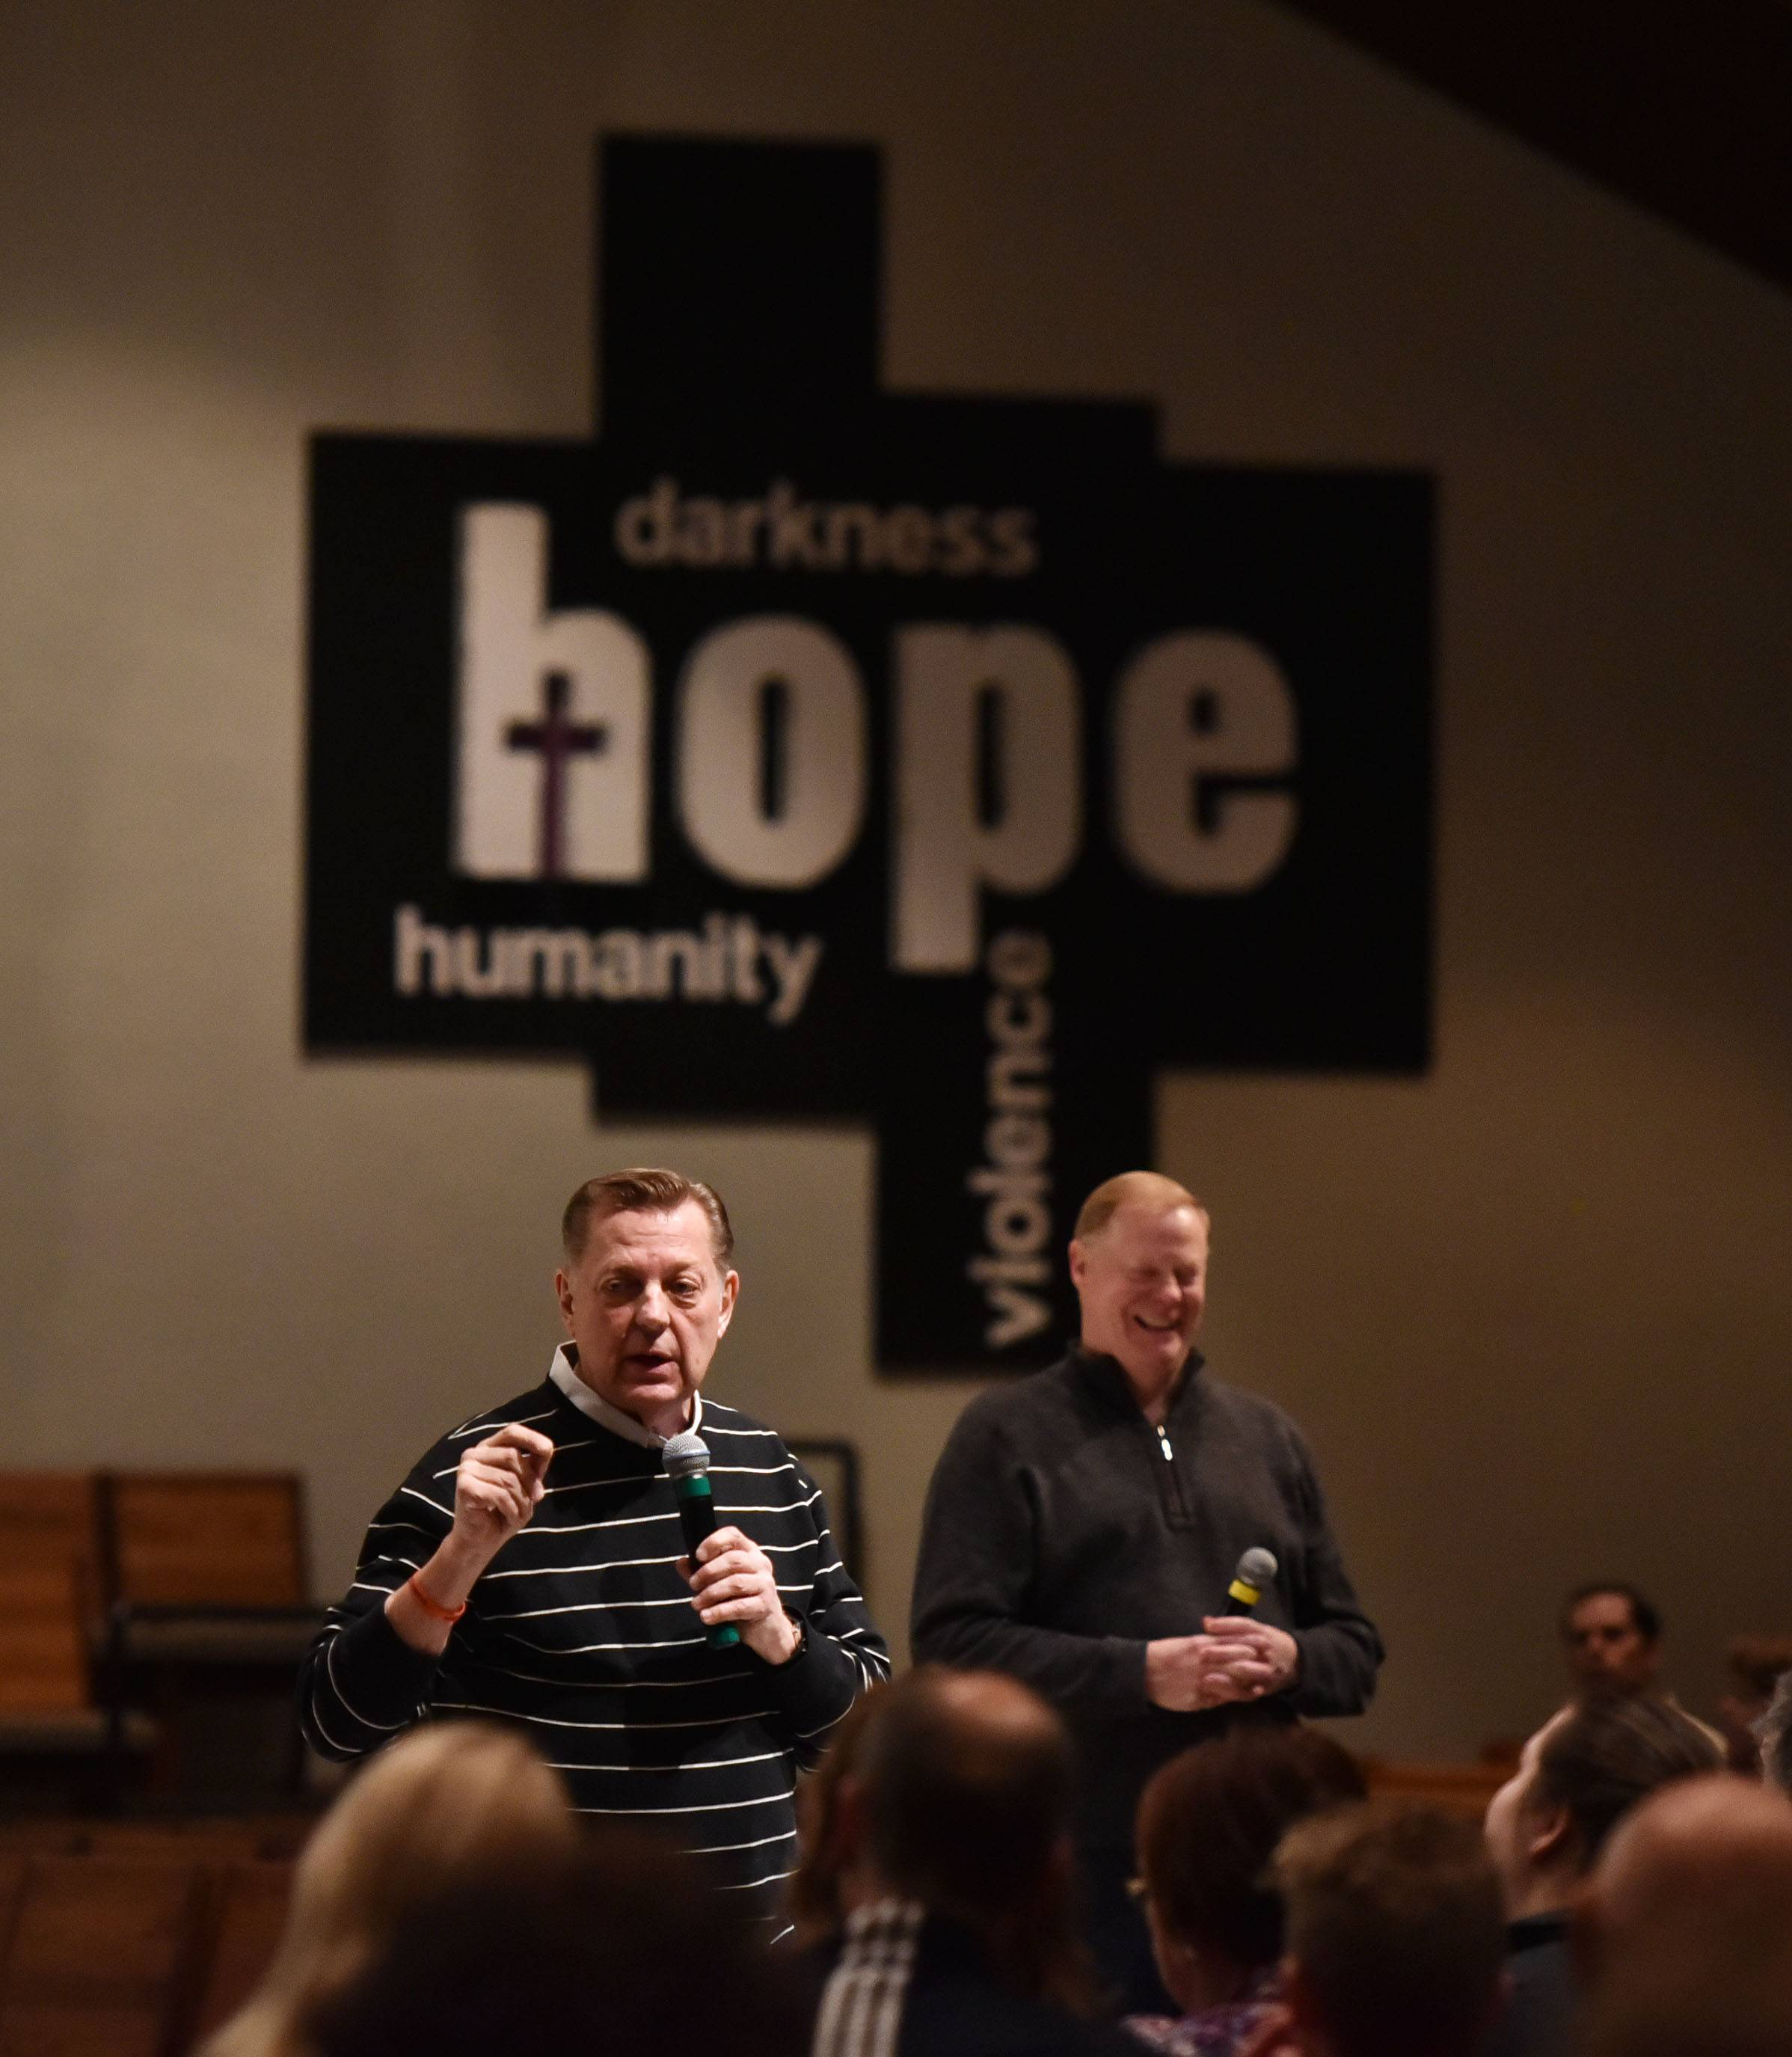 Activist priest Pfleger brings message on violence to suburbs